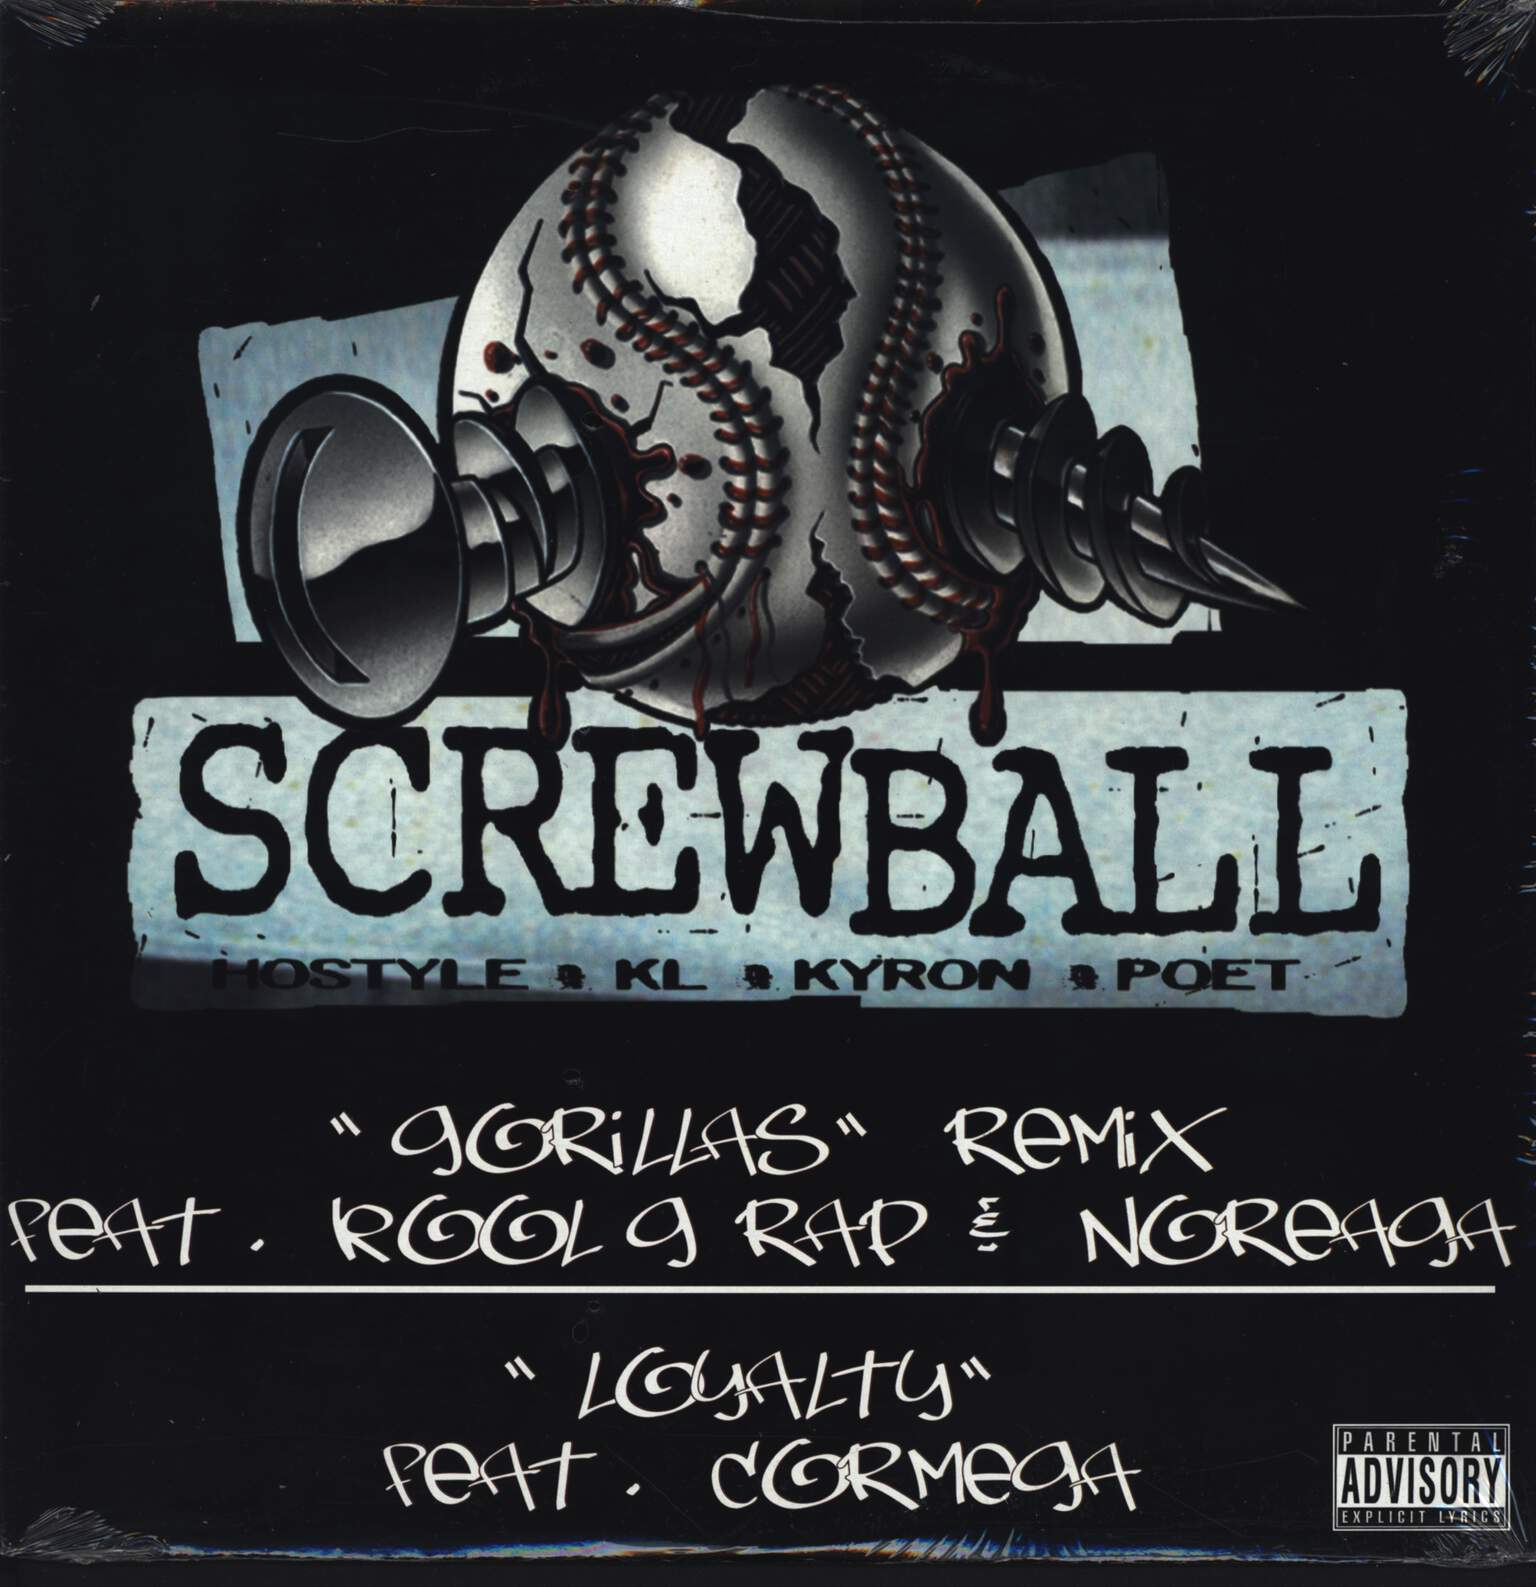 "Screwball: Gorillas (Remix), 12"" Maxi Single (Vinyl)"